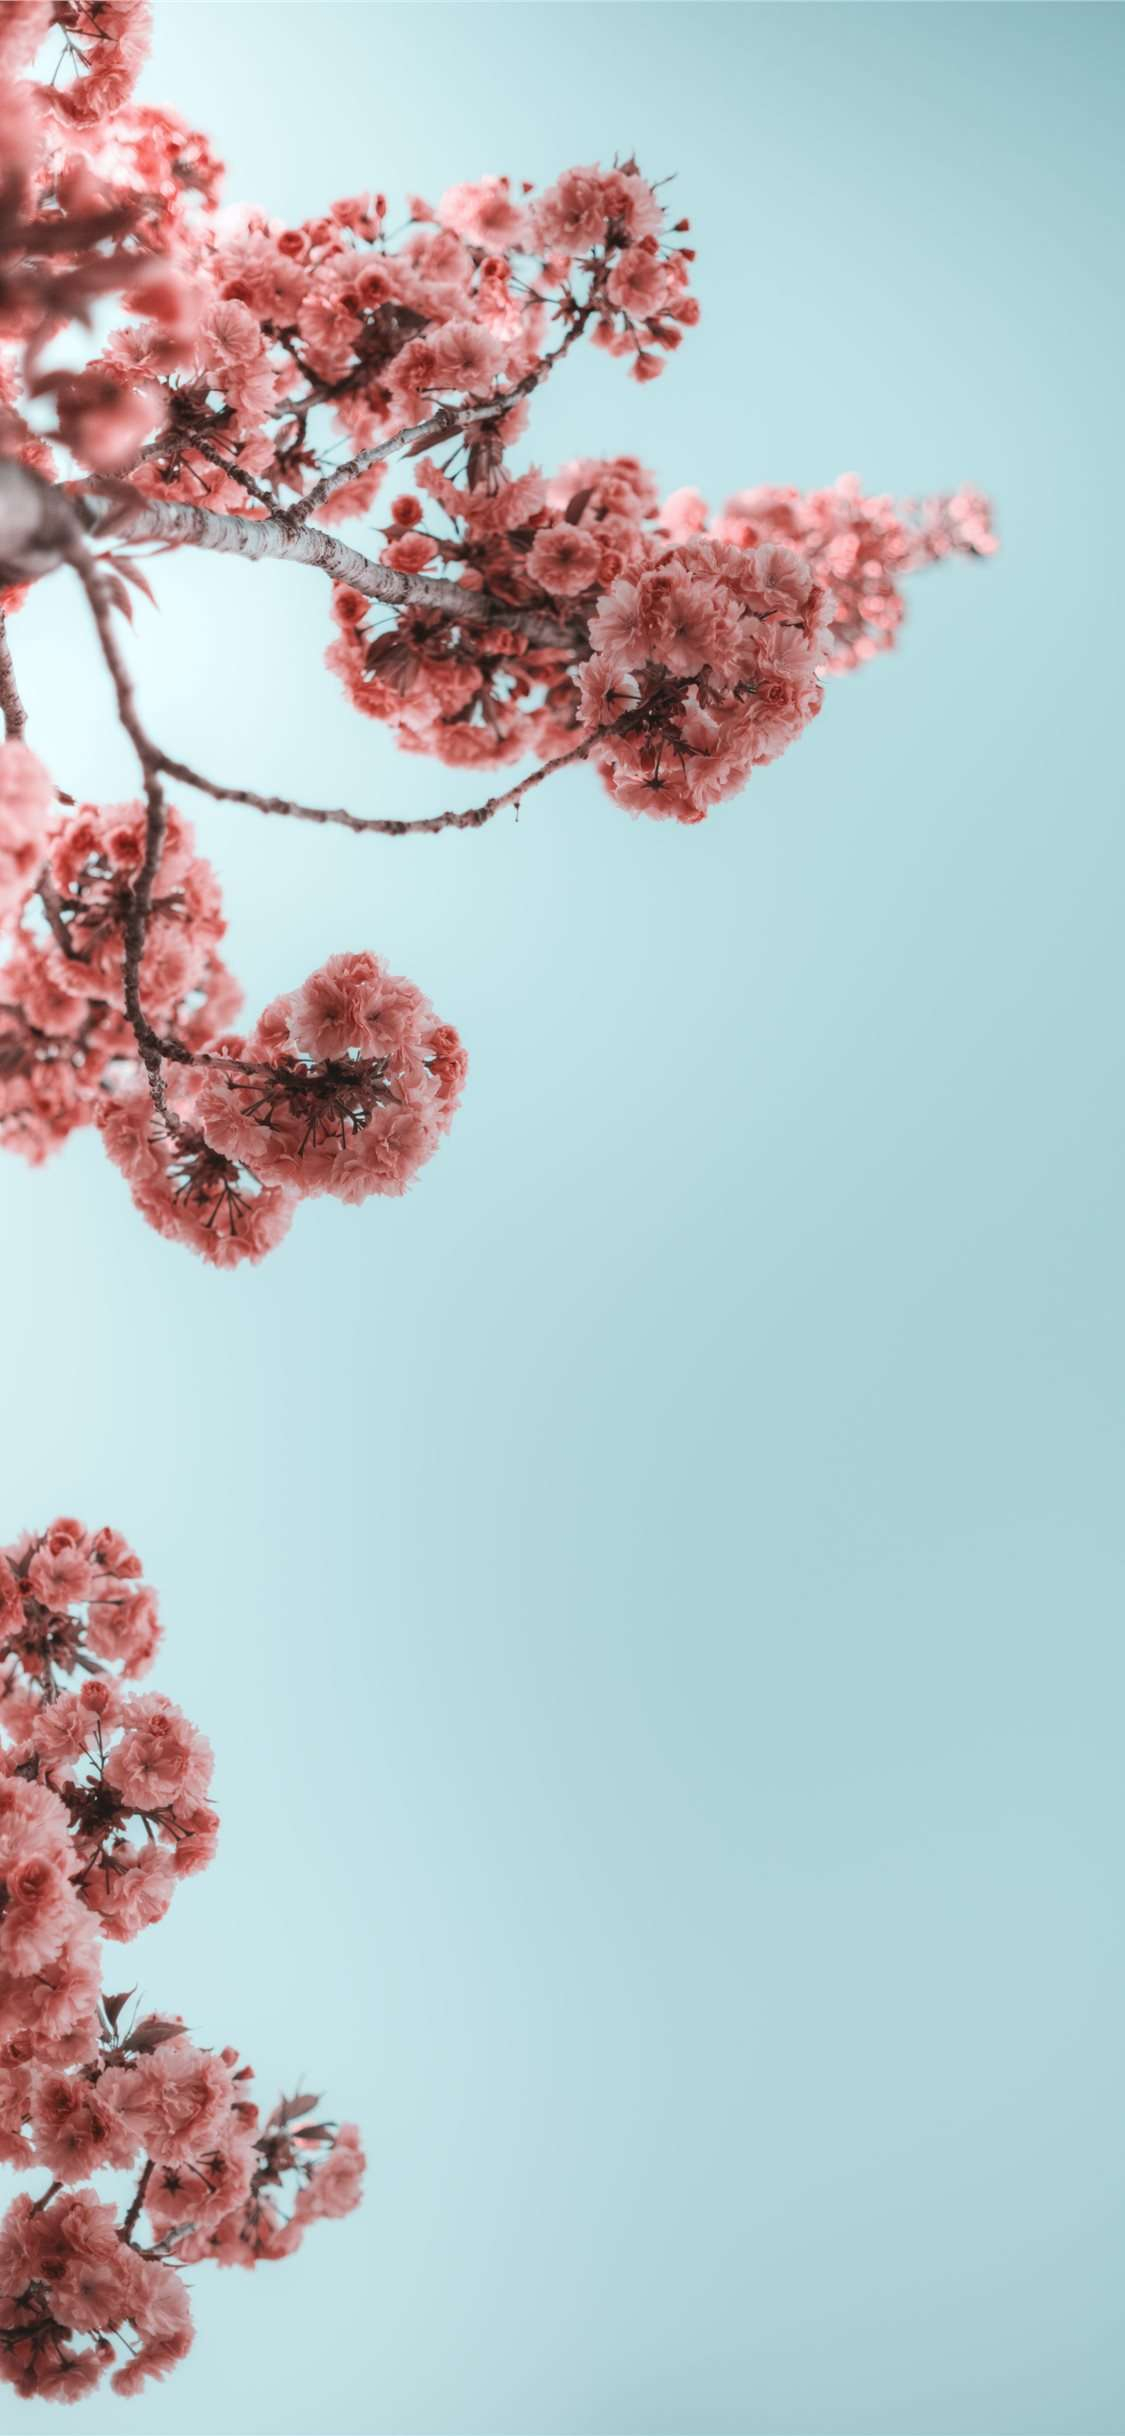 selective photograph of branches with flower iphone 11 wallpaper ilikewallpaper